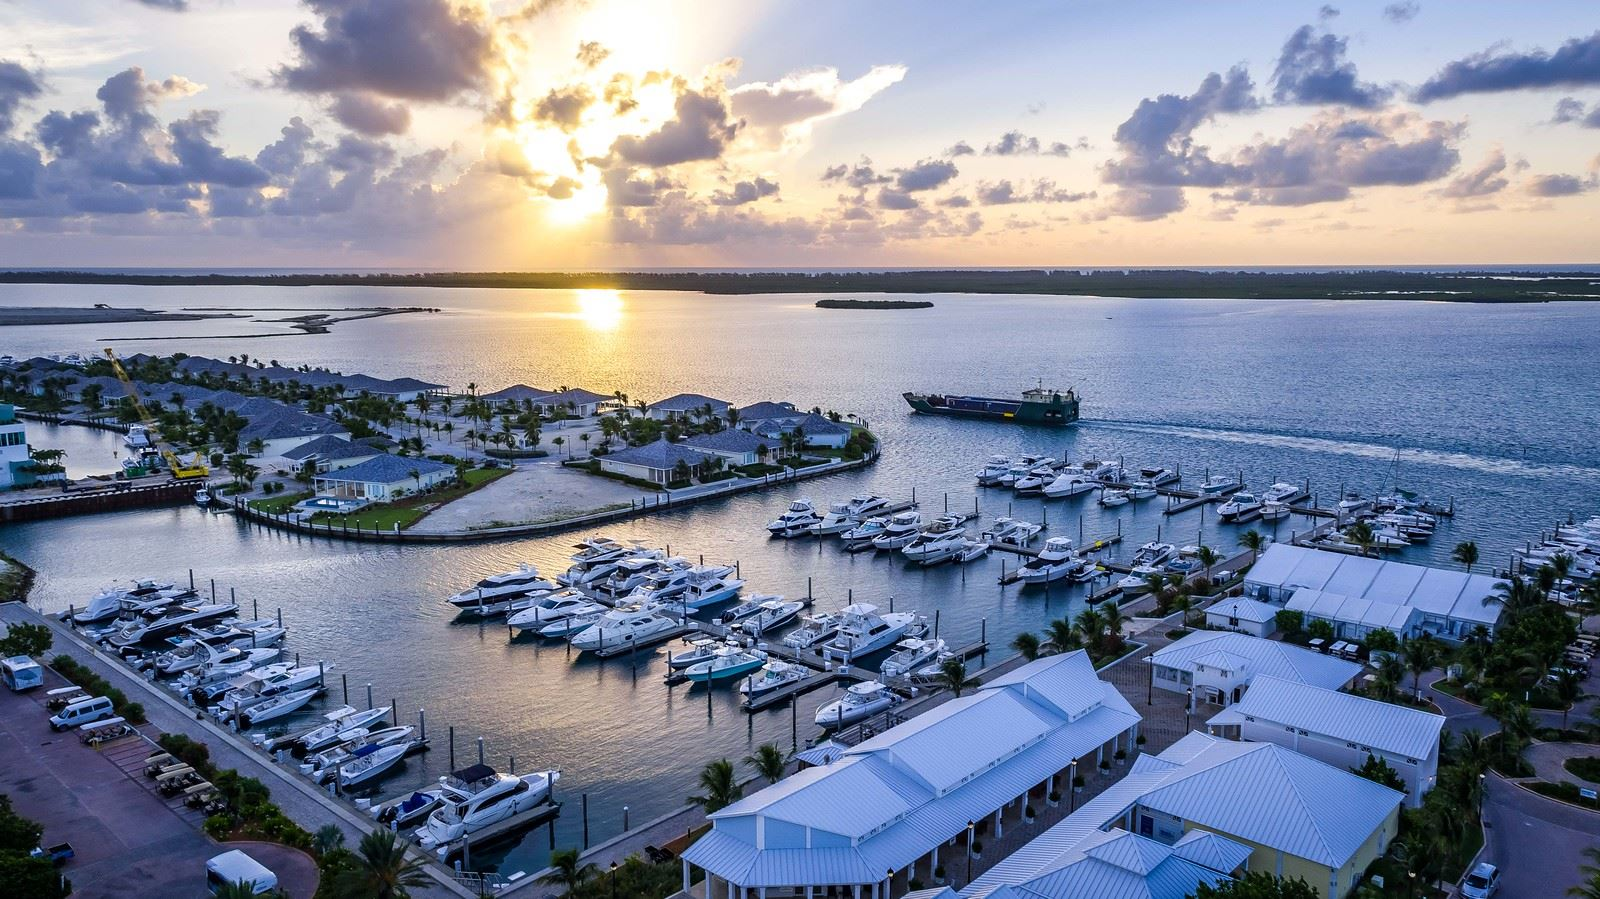 sun setting over bahama waters   looking down over many boats docked